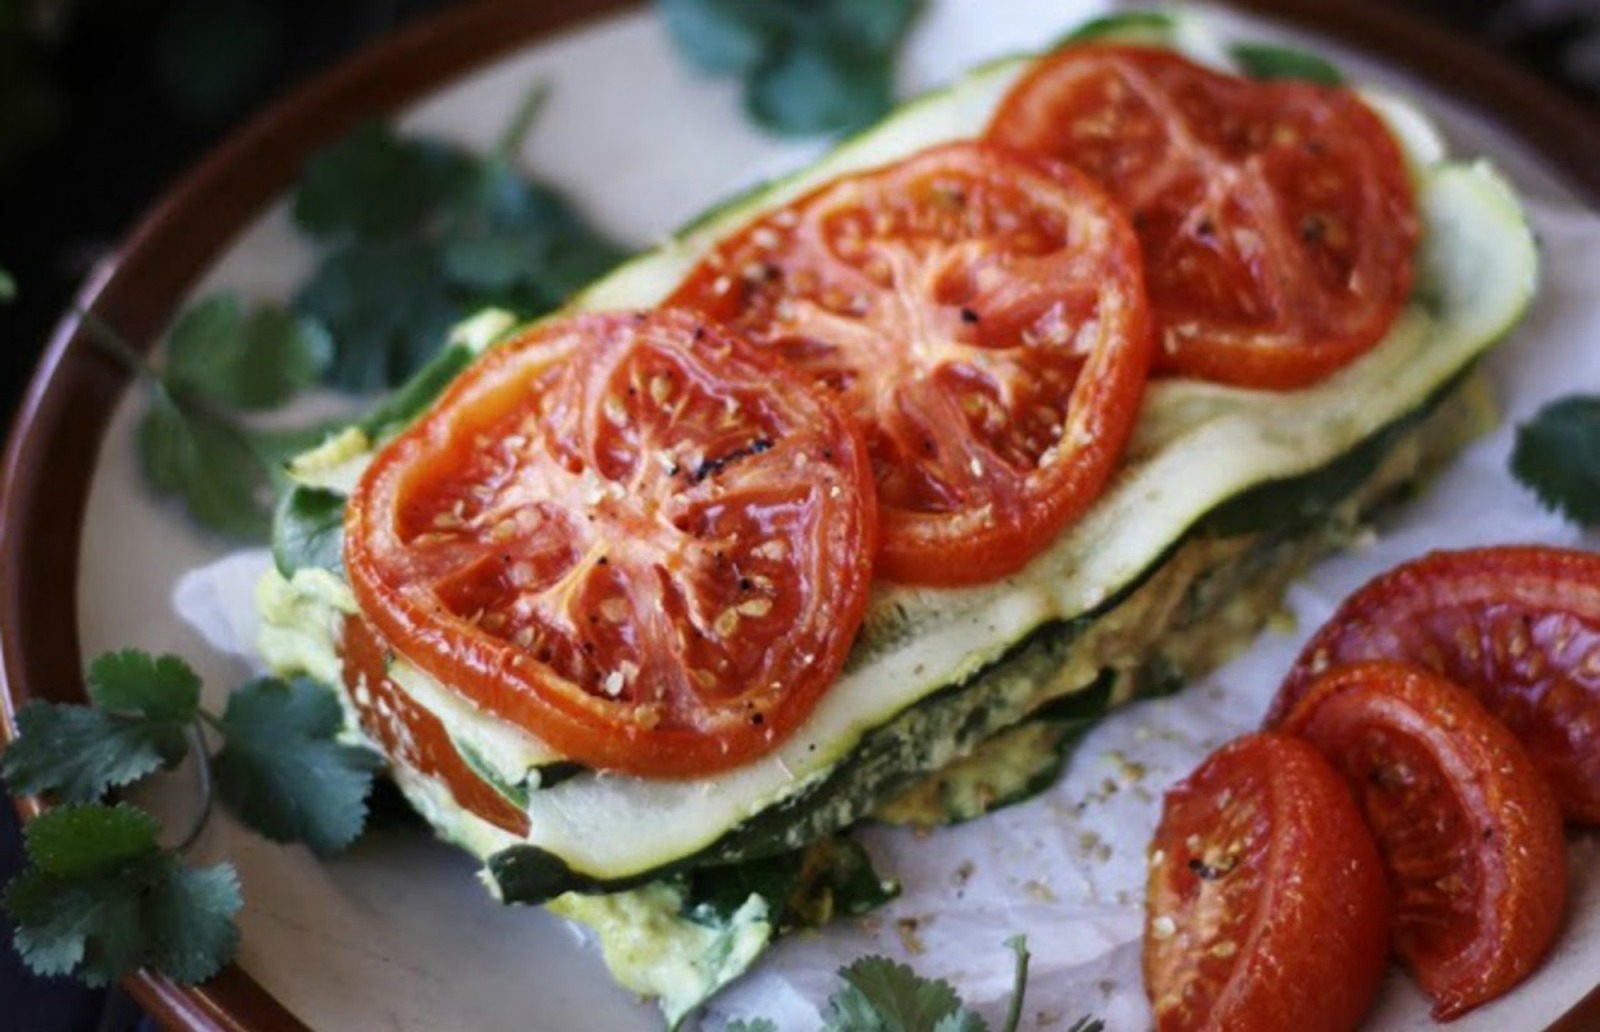 10 Entrees You Can Make Without a Stove or Oven